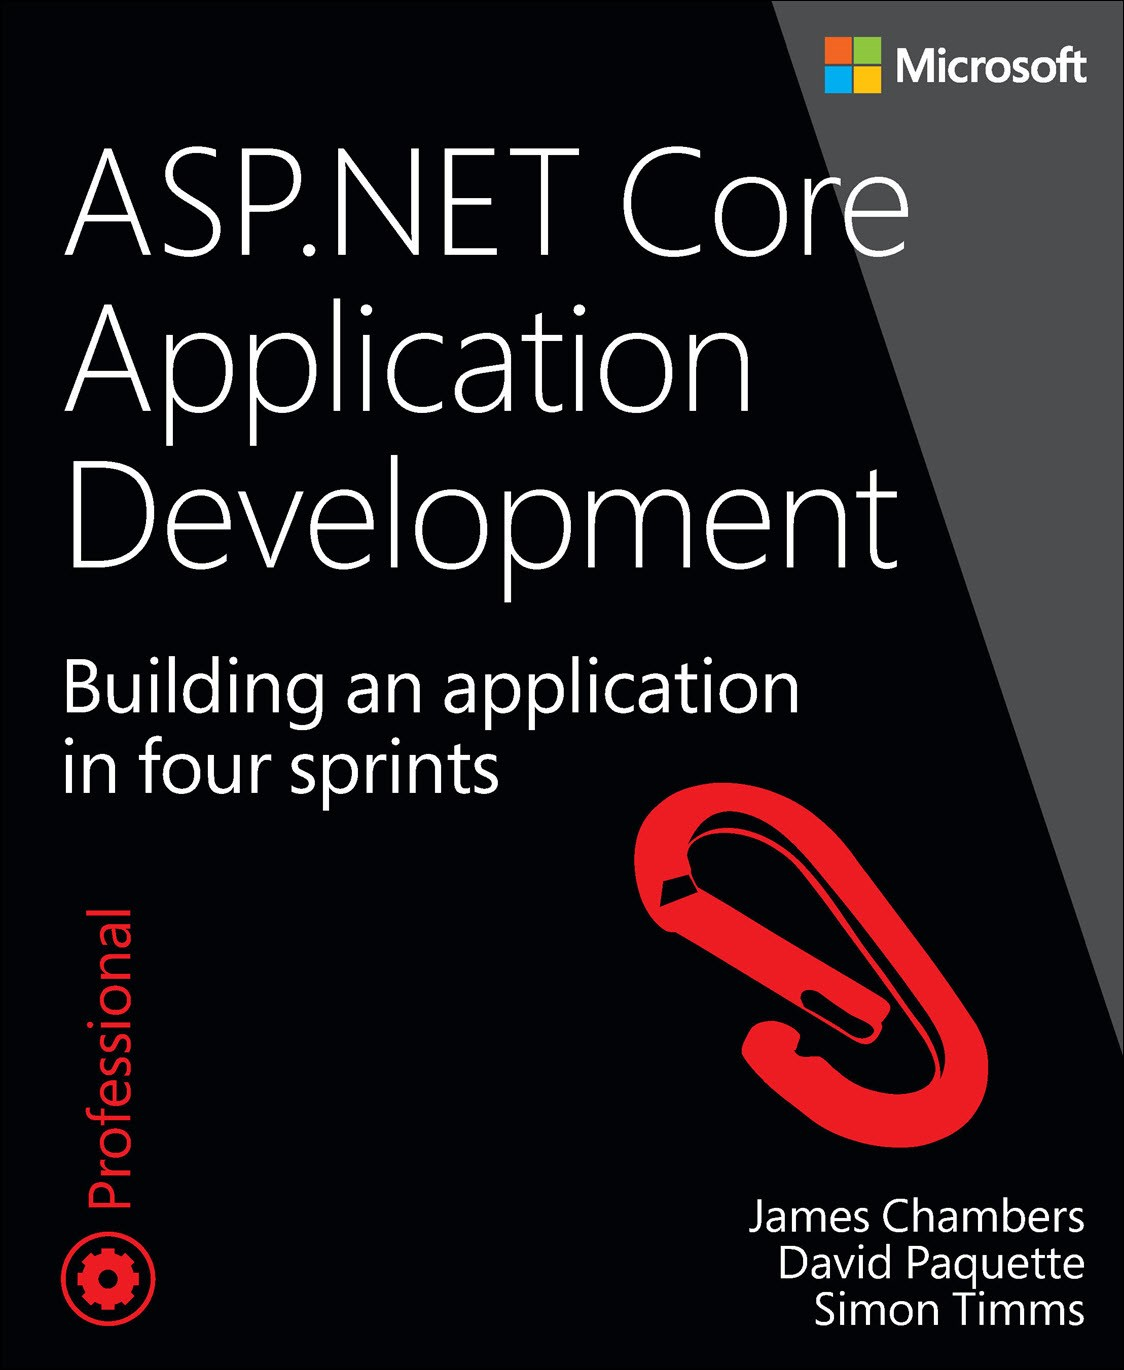 ASP.NET Core Application Development: Building an application in four sprints